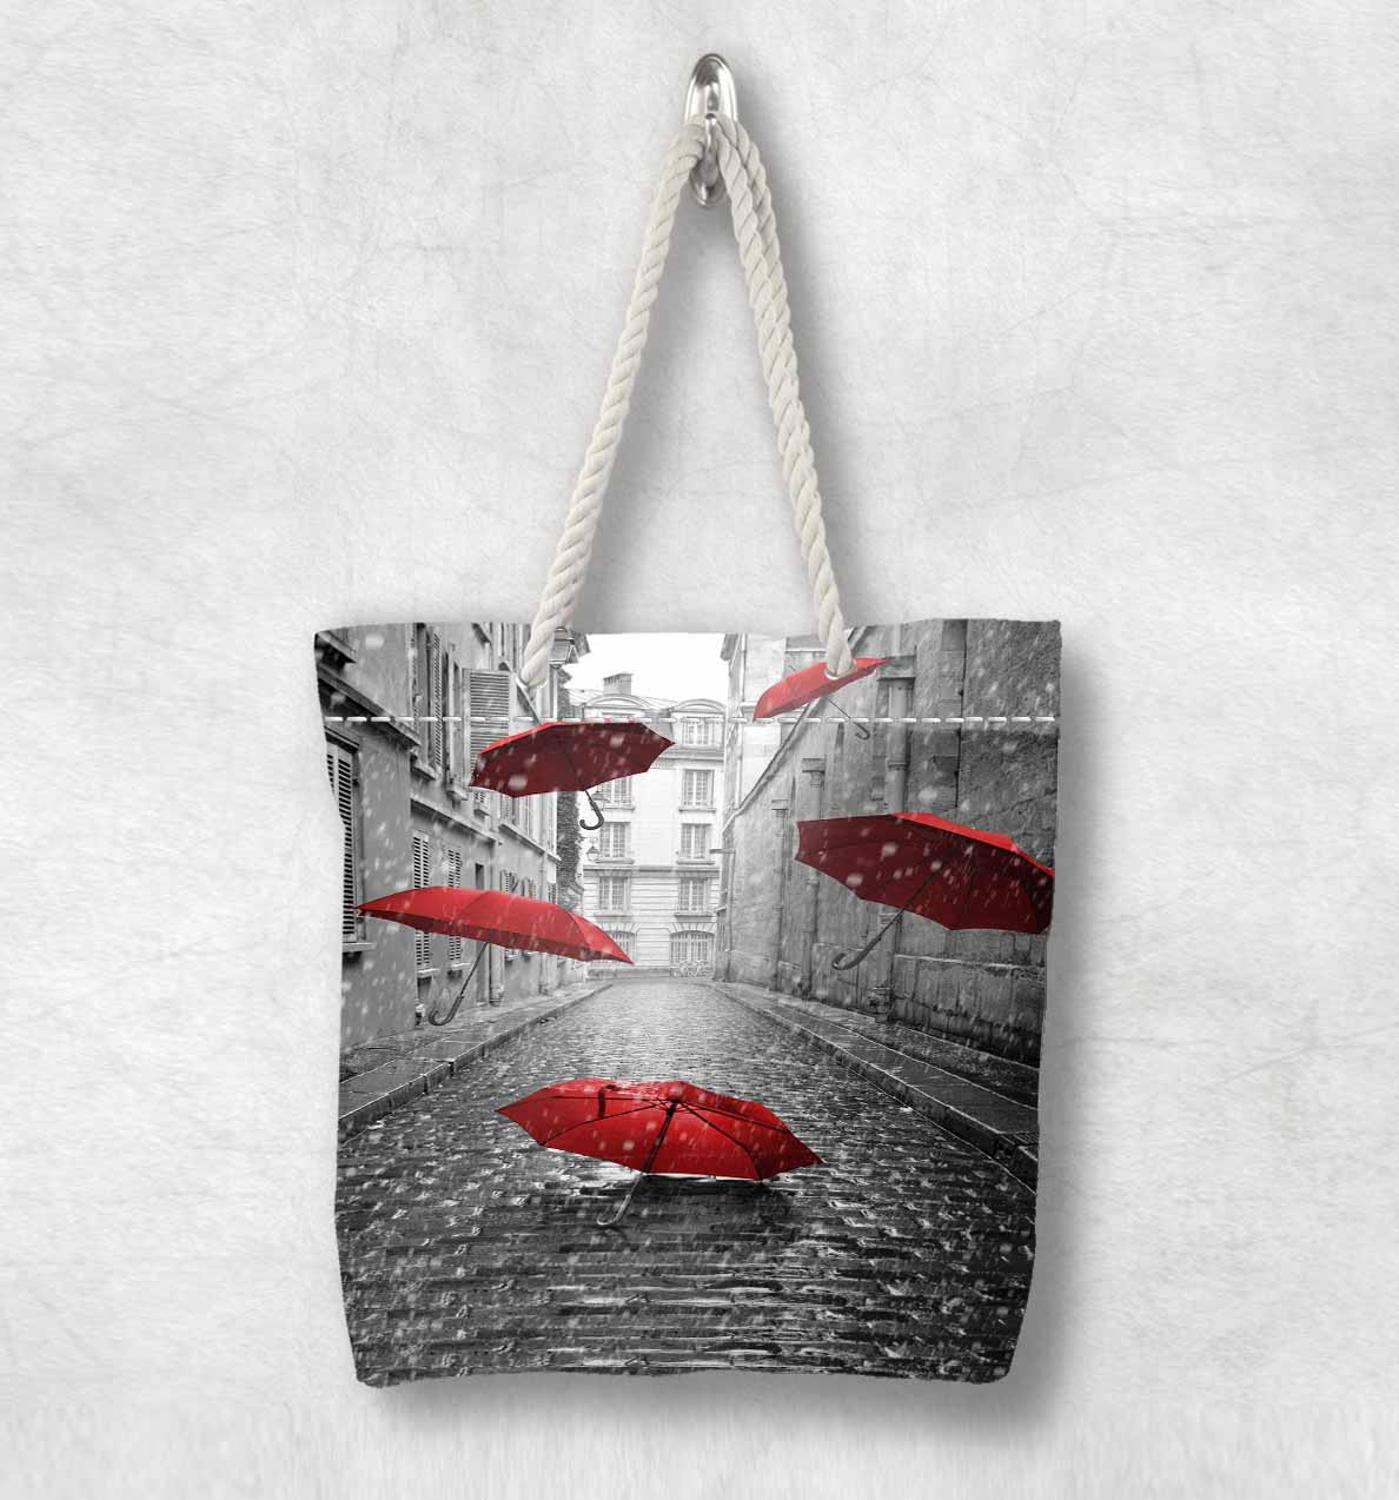 Else Gray White Old Street Red Umbrella New Fashion White Rope Handle Canvas Bag Cotton Canvas Zippered Tote Bag Shoulder Bag